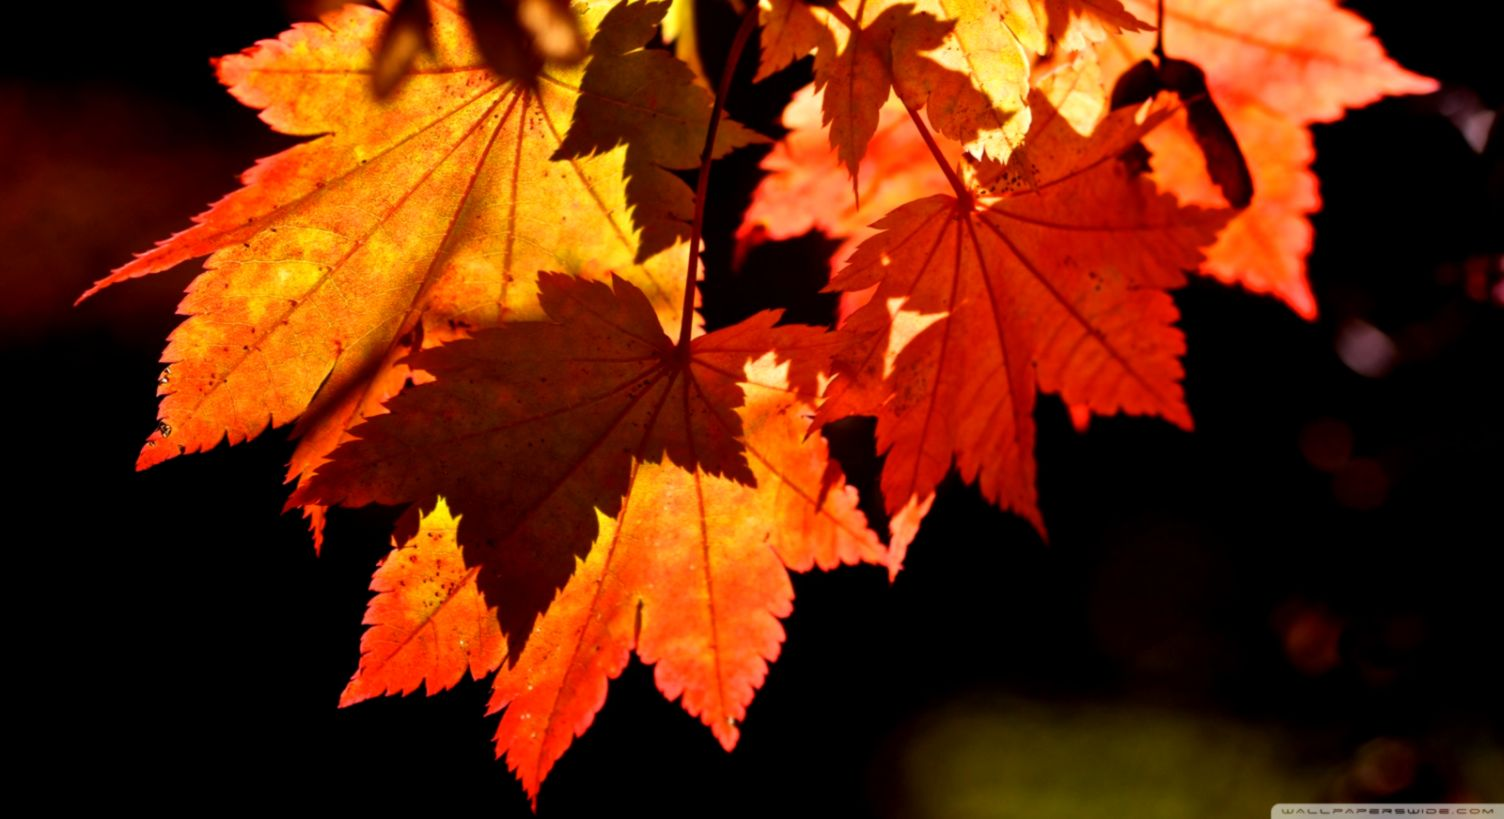 Autumn Fall Leaves Wallpaper Wallpapers History